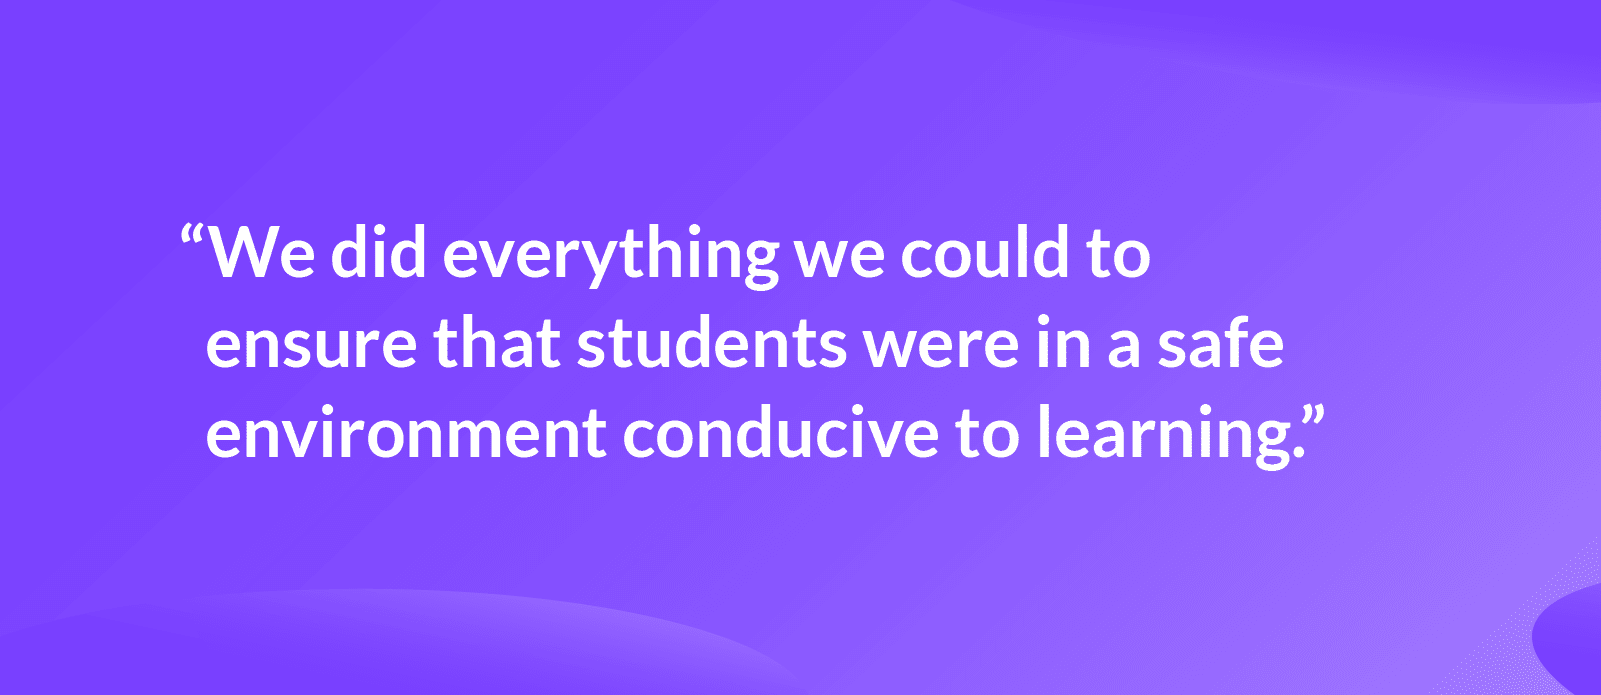 """Quote that reads: """"We did everything we could to ensure that students were in a safe environment conducive to learning."""""""